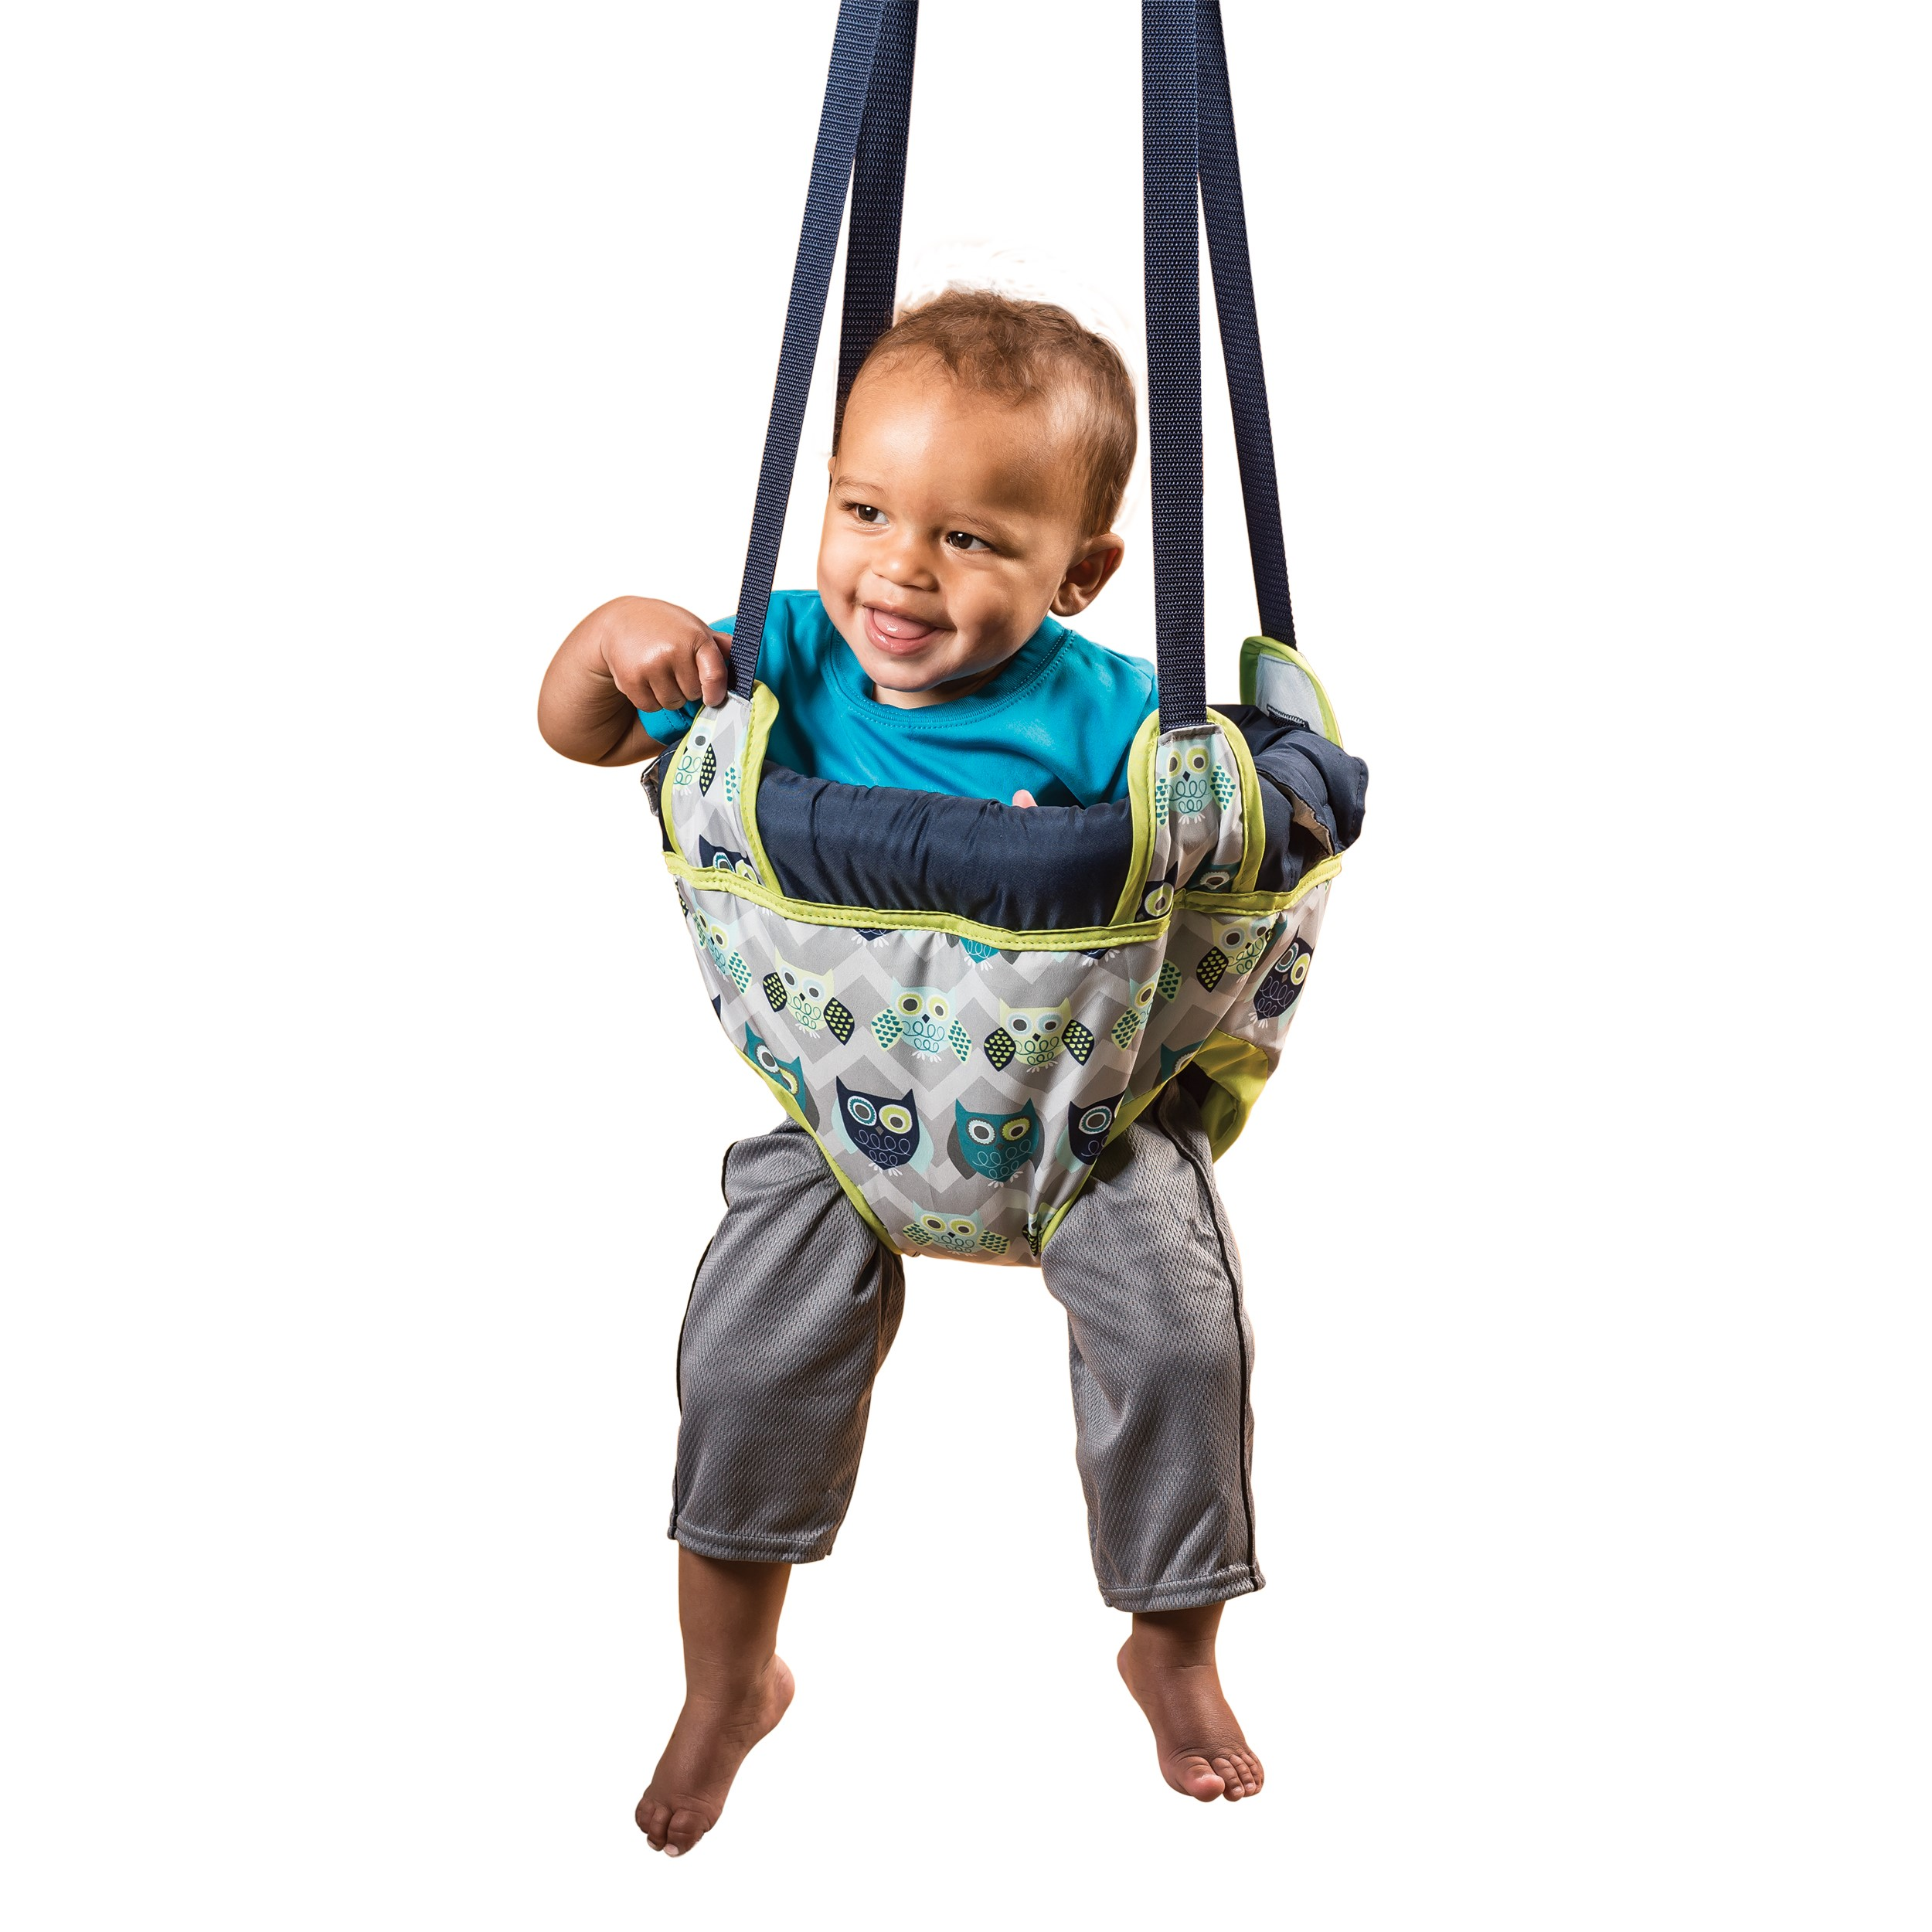 Evenflo ExerSaucer Doorway Jumper, Owl